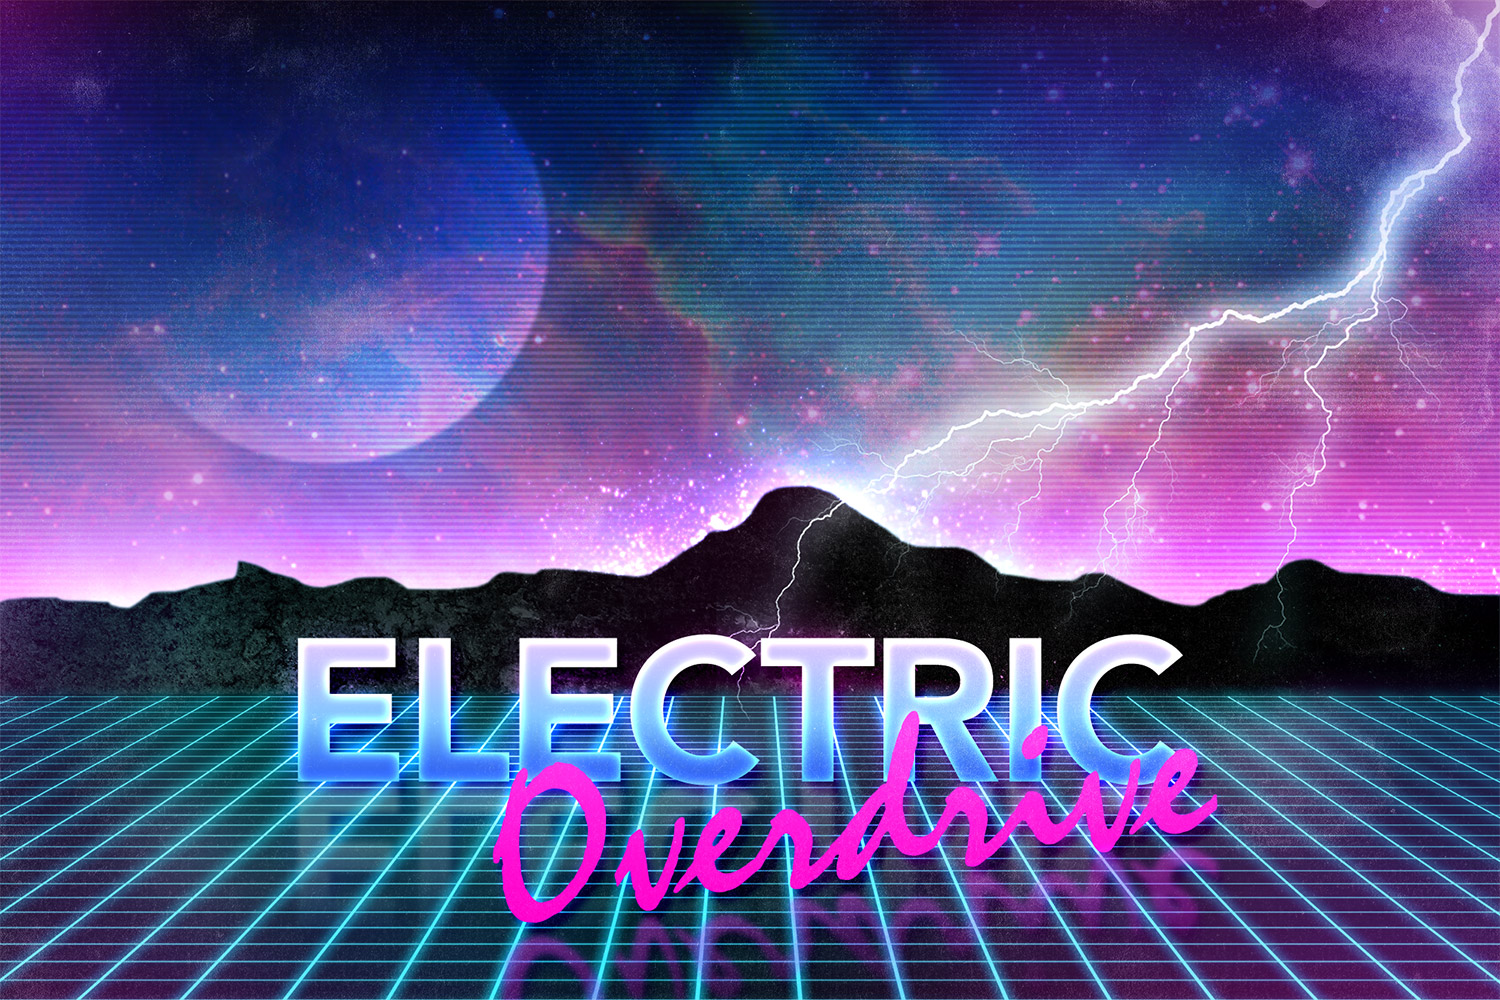 Colour Scheme Designer How To Create 80s Style Retro Futuristic Neon Artwork